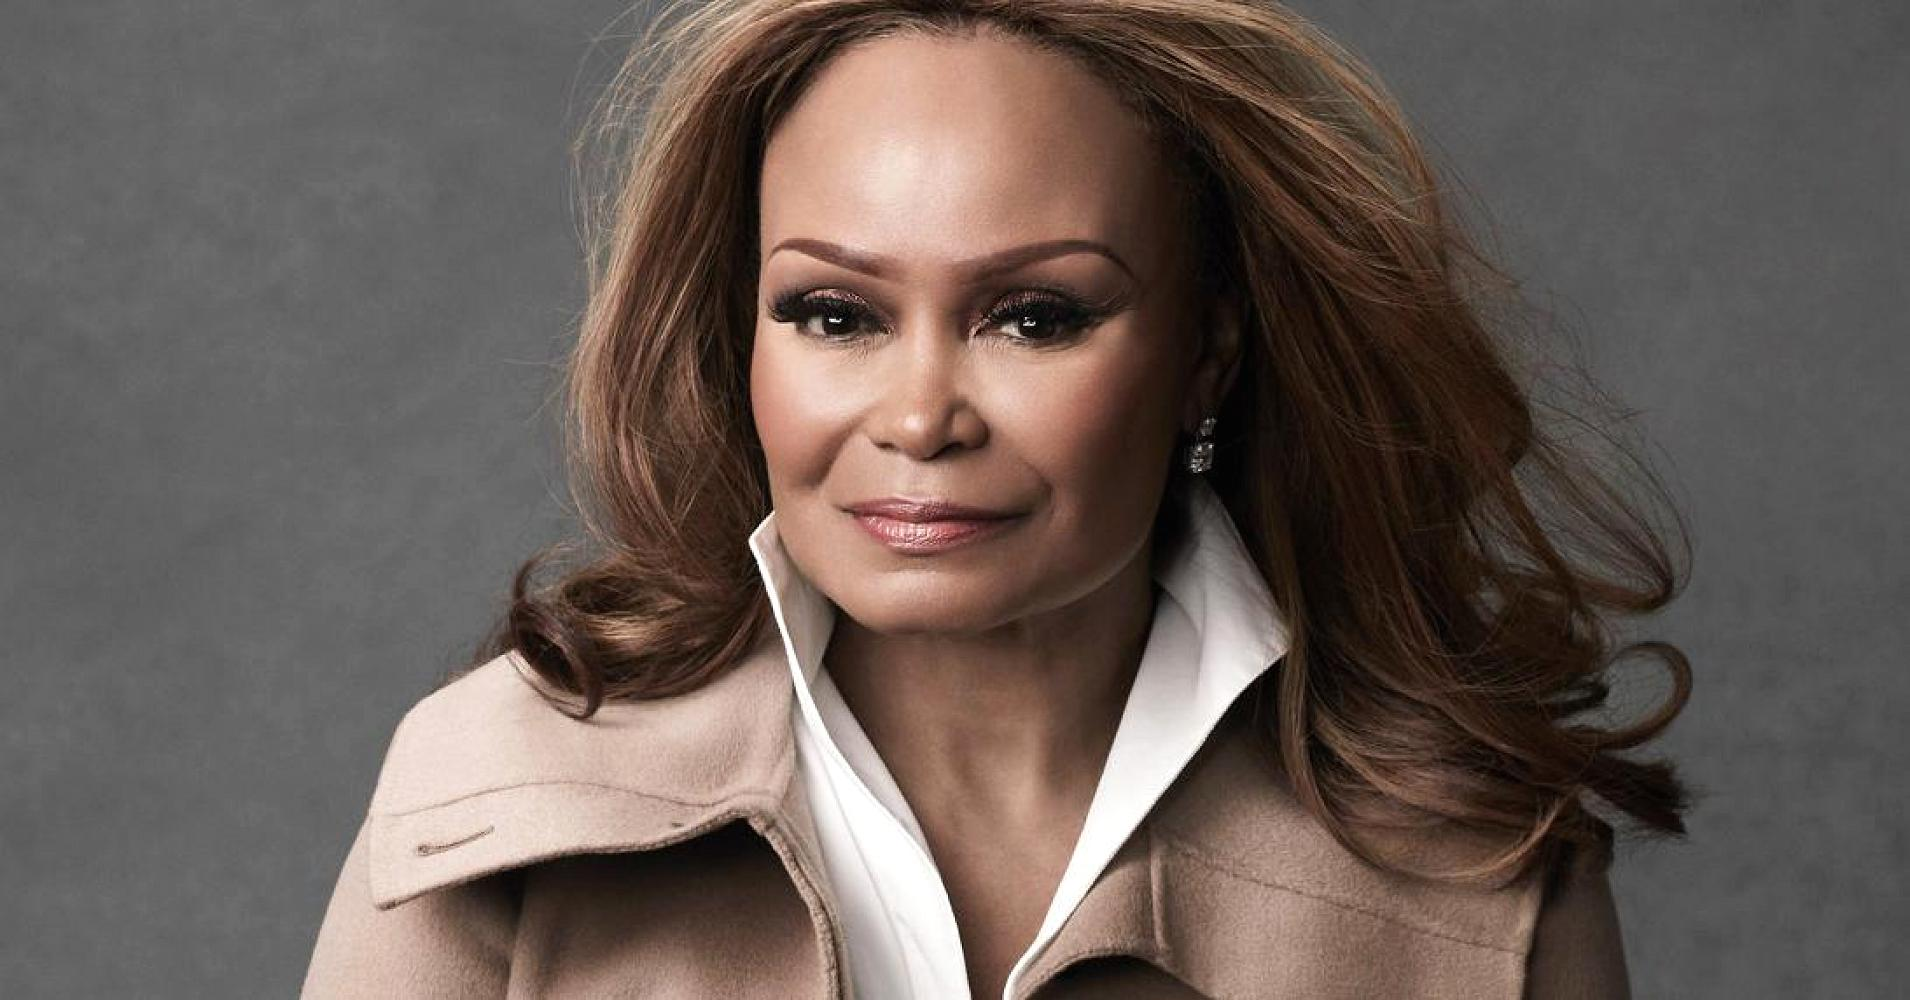 Trying to find a job? Janice Bryant Howroyd has your back. Starting with a vacation to visit her sister in California and never being able to find a job she desired, with $1,500 she started ACT-1. Howroyd is the CEO of Act-1, a staffing and human resources firm topping $1billion making her one of the biggest woman and minority-owned businesses in the U.S. Beyond her firm, Howroyd served on presidential commissions for the past two Presidents and was appointed by President Obama to serve on the Board of Advisors for the White House Initiative on HBCUs. Howroyd ranks #34 with a net worth of $420 million.